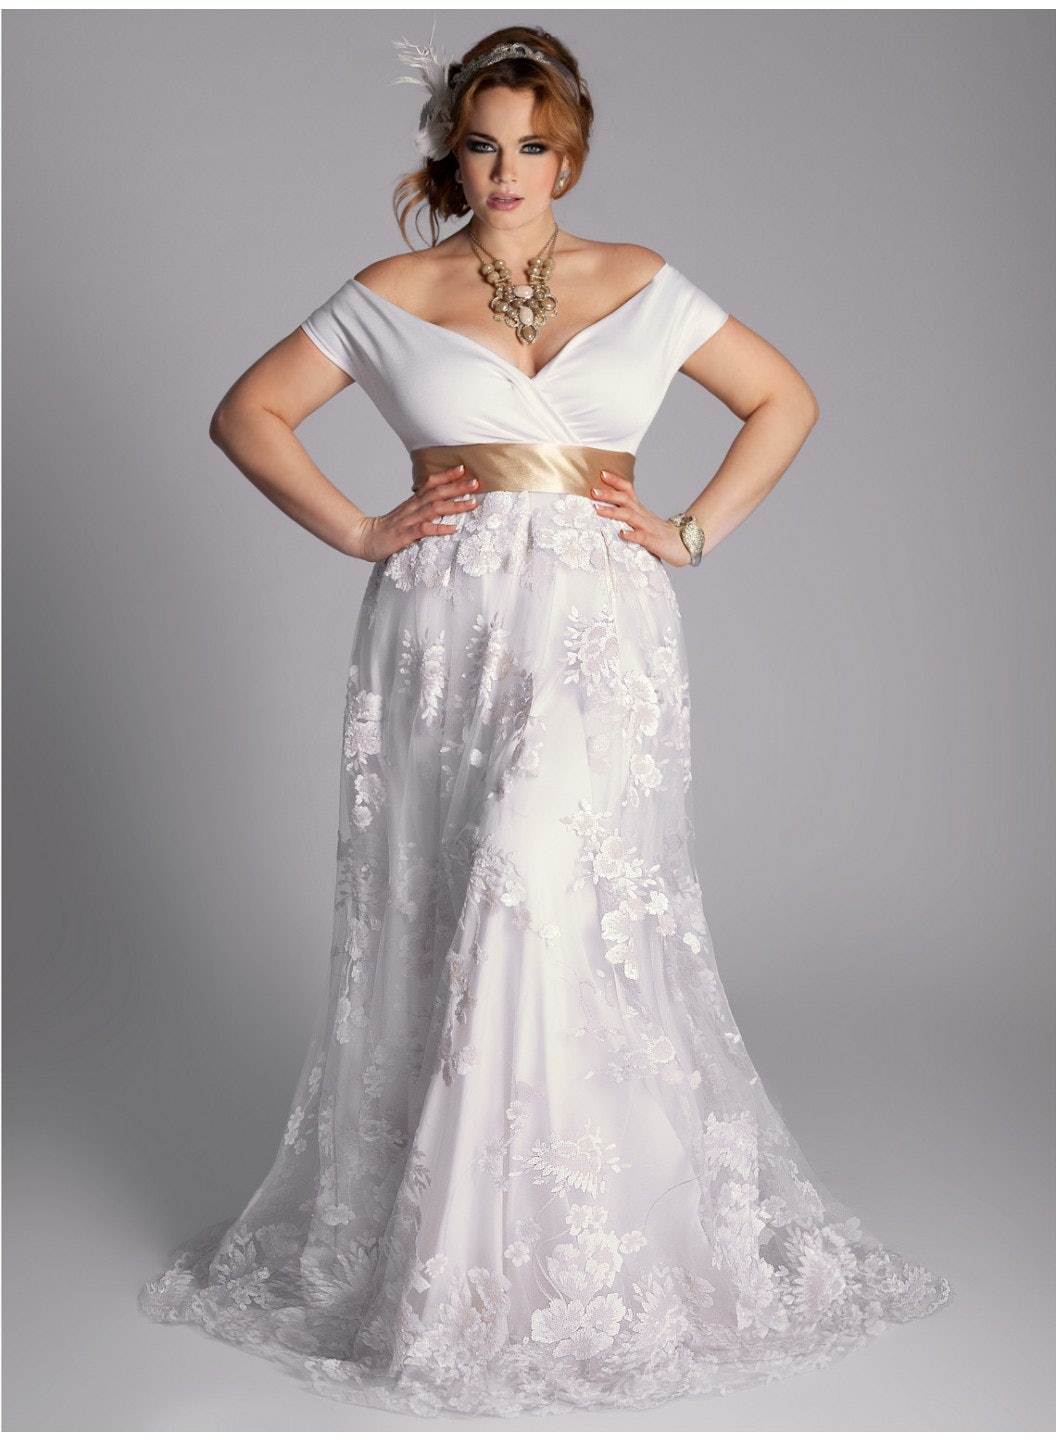 25 stunning plus size wedding dresses for every style of nuptial affair plus size wedding dresses 25 Stunning Plus Size Wedding Dresses For Every Style Of Nuptial Affair